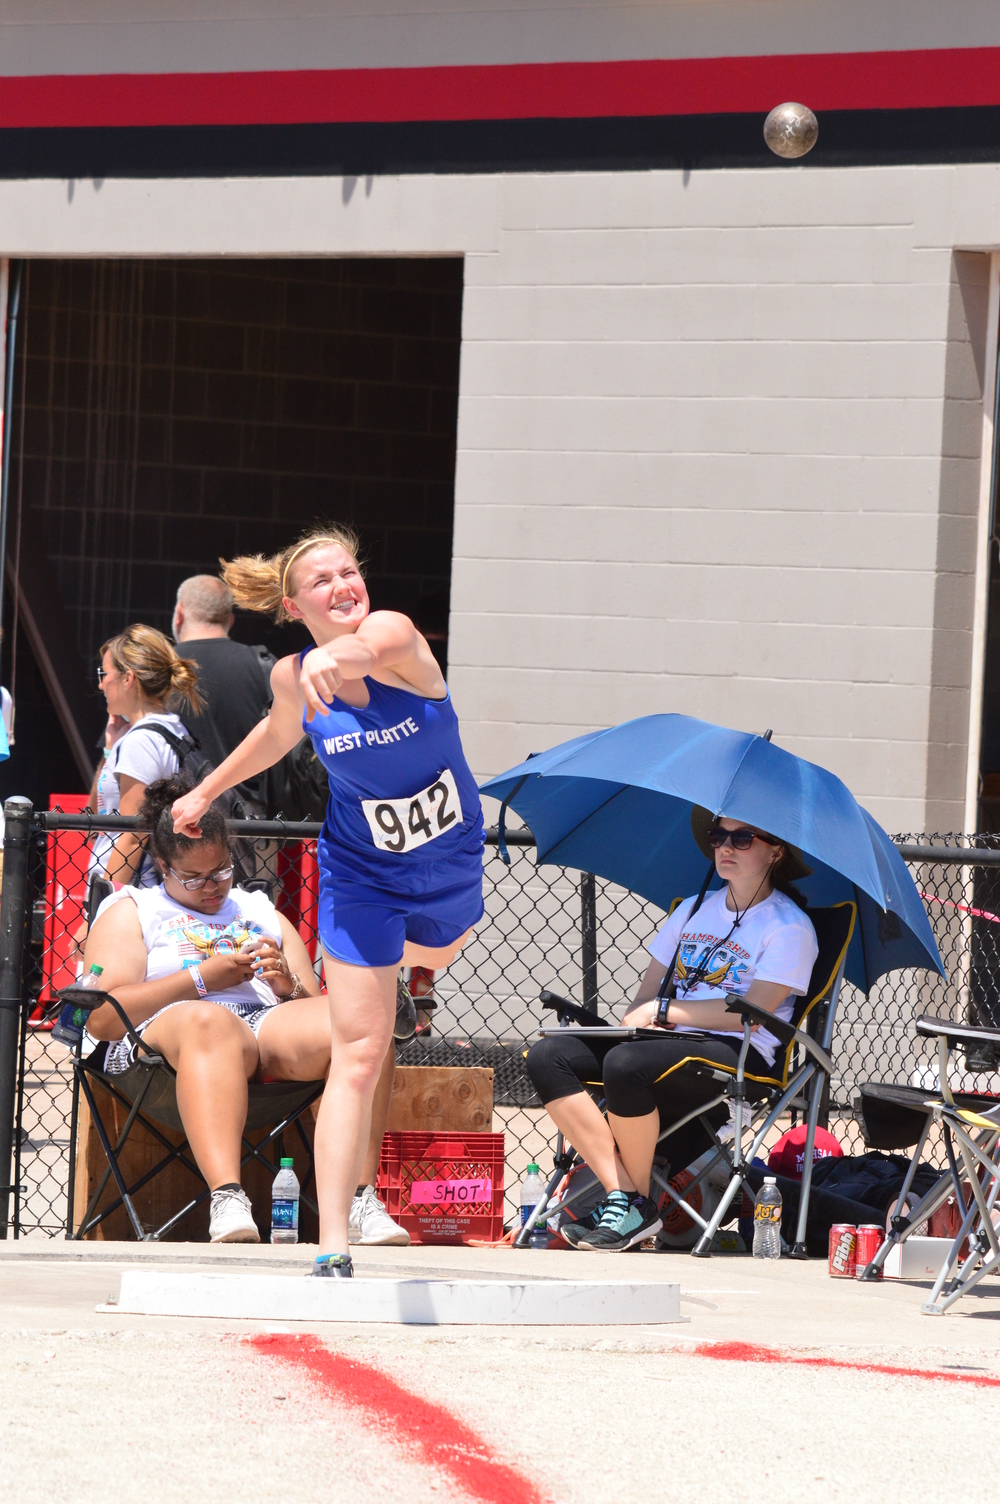 KERN SORRELL/Special to The Citizen West Platte junior Sydney Oberdiek heaves the shot put Saturday, May 21 during the Class 2 Missouri State Track and Field Championships at Jefferson City High School in Jefferson City, Mo.